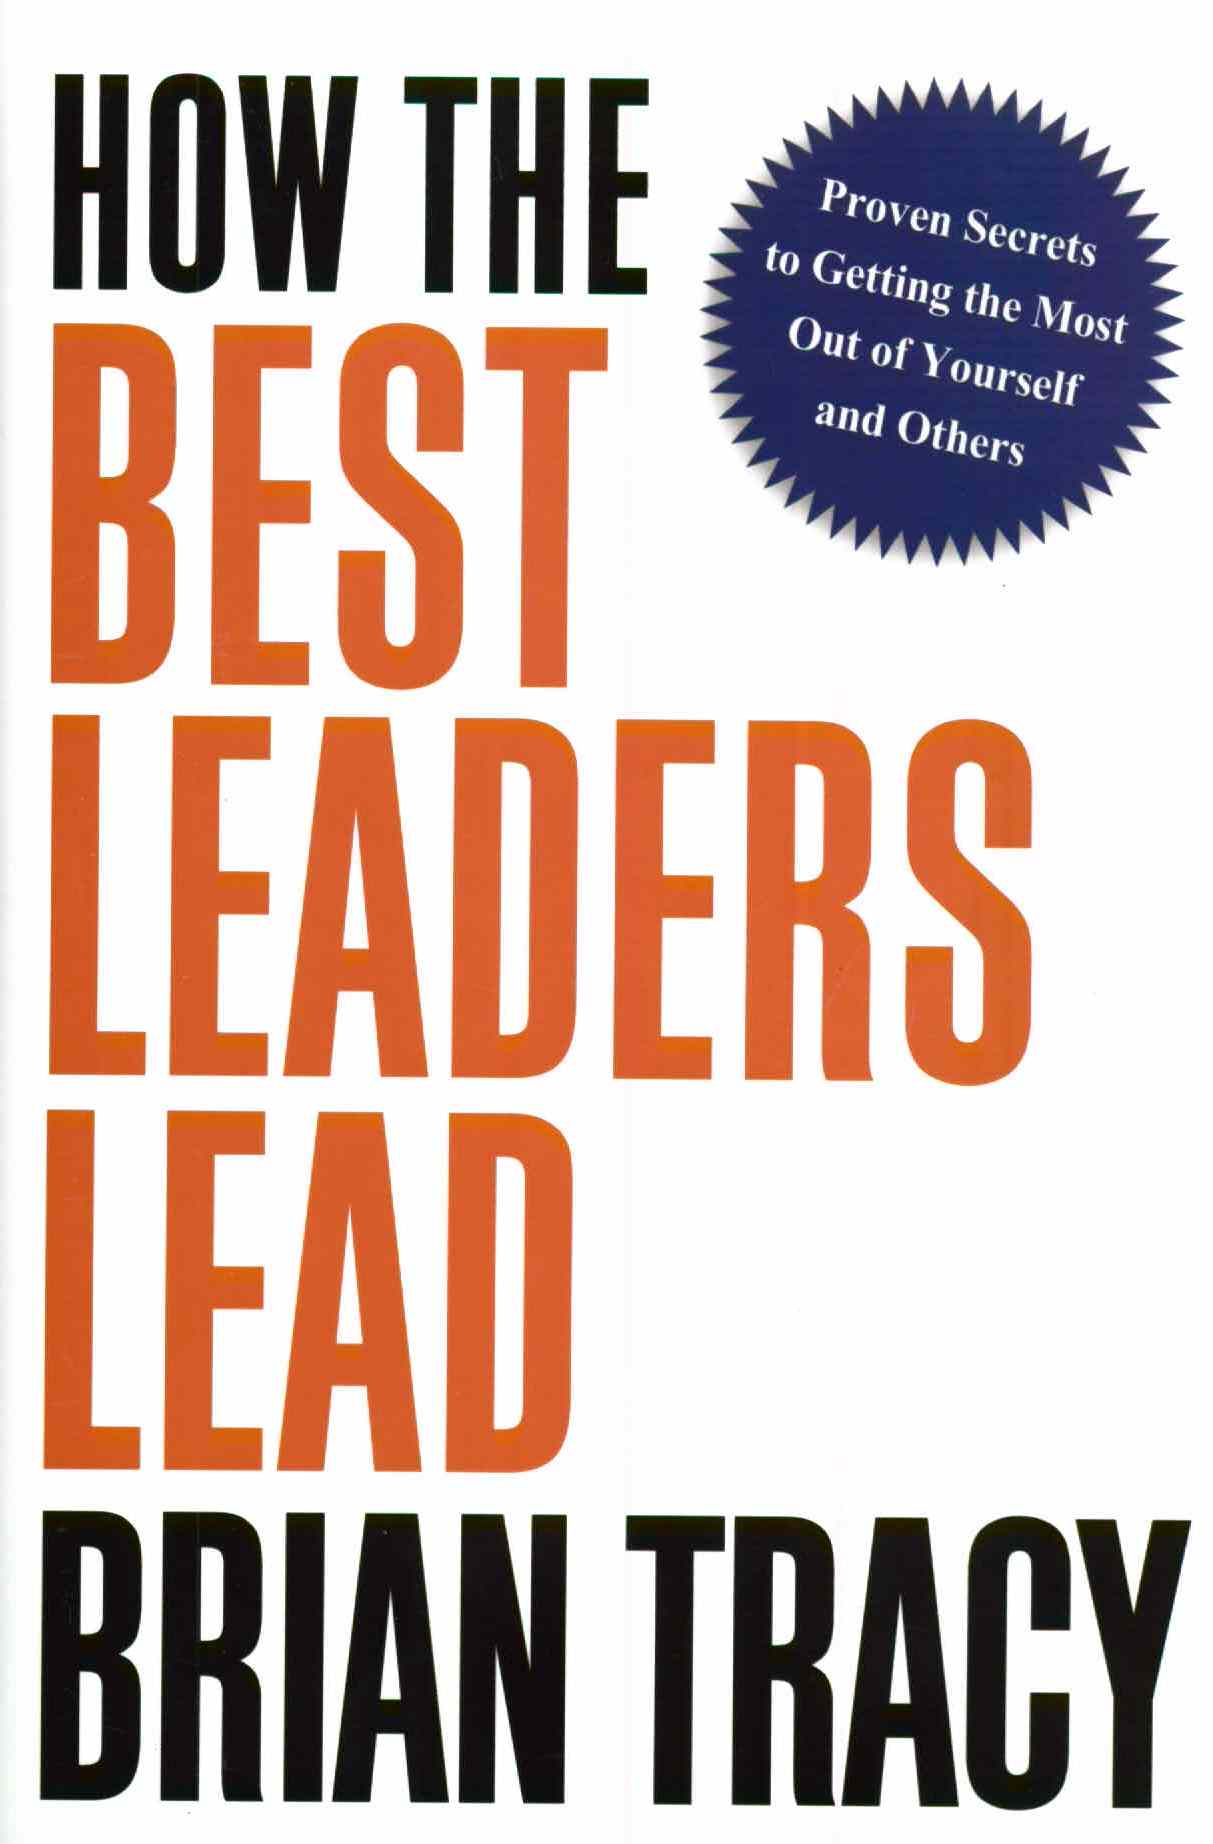 New book summary available for How the Best Leaders Lead